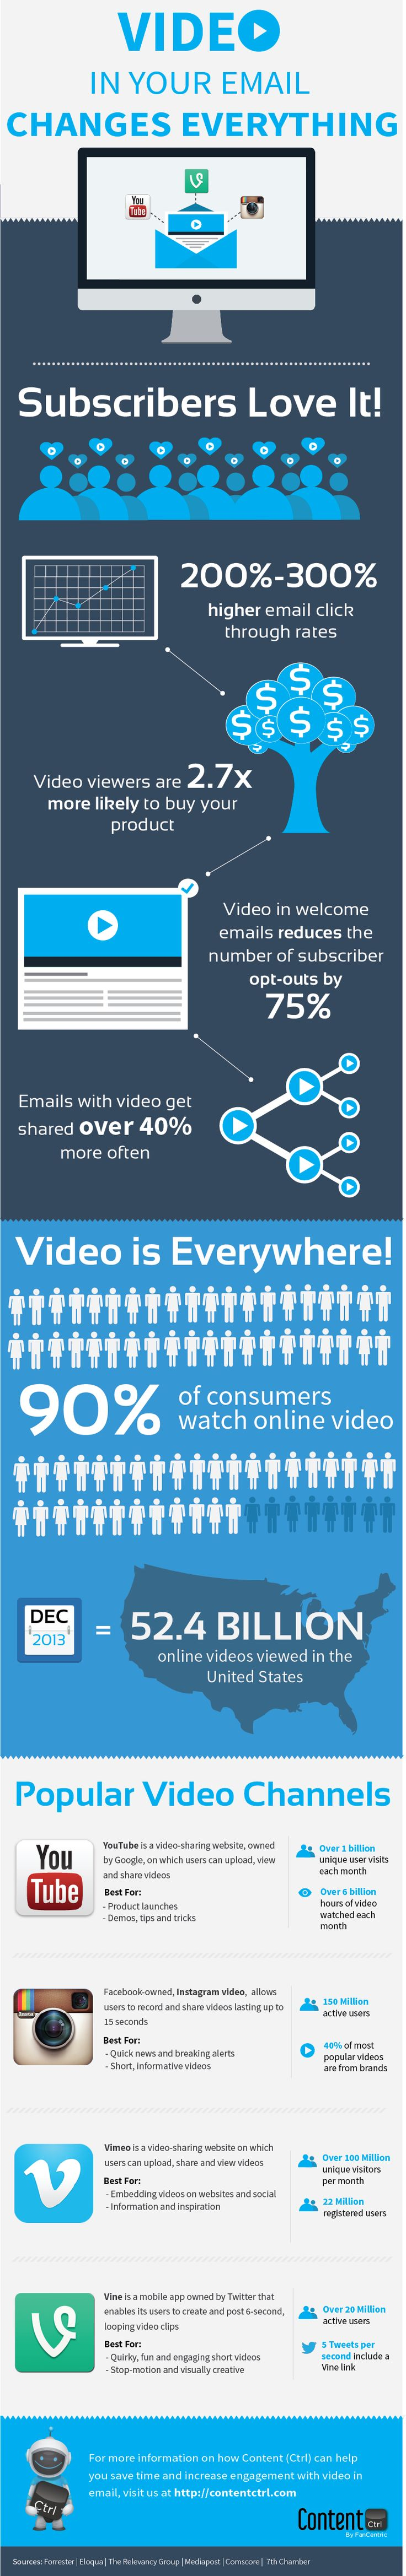 The Value Of Video In Email Infographic